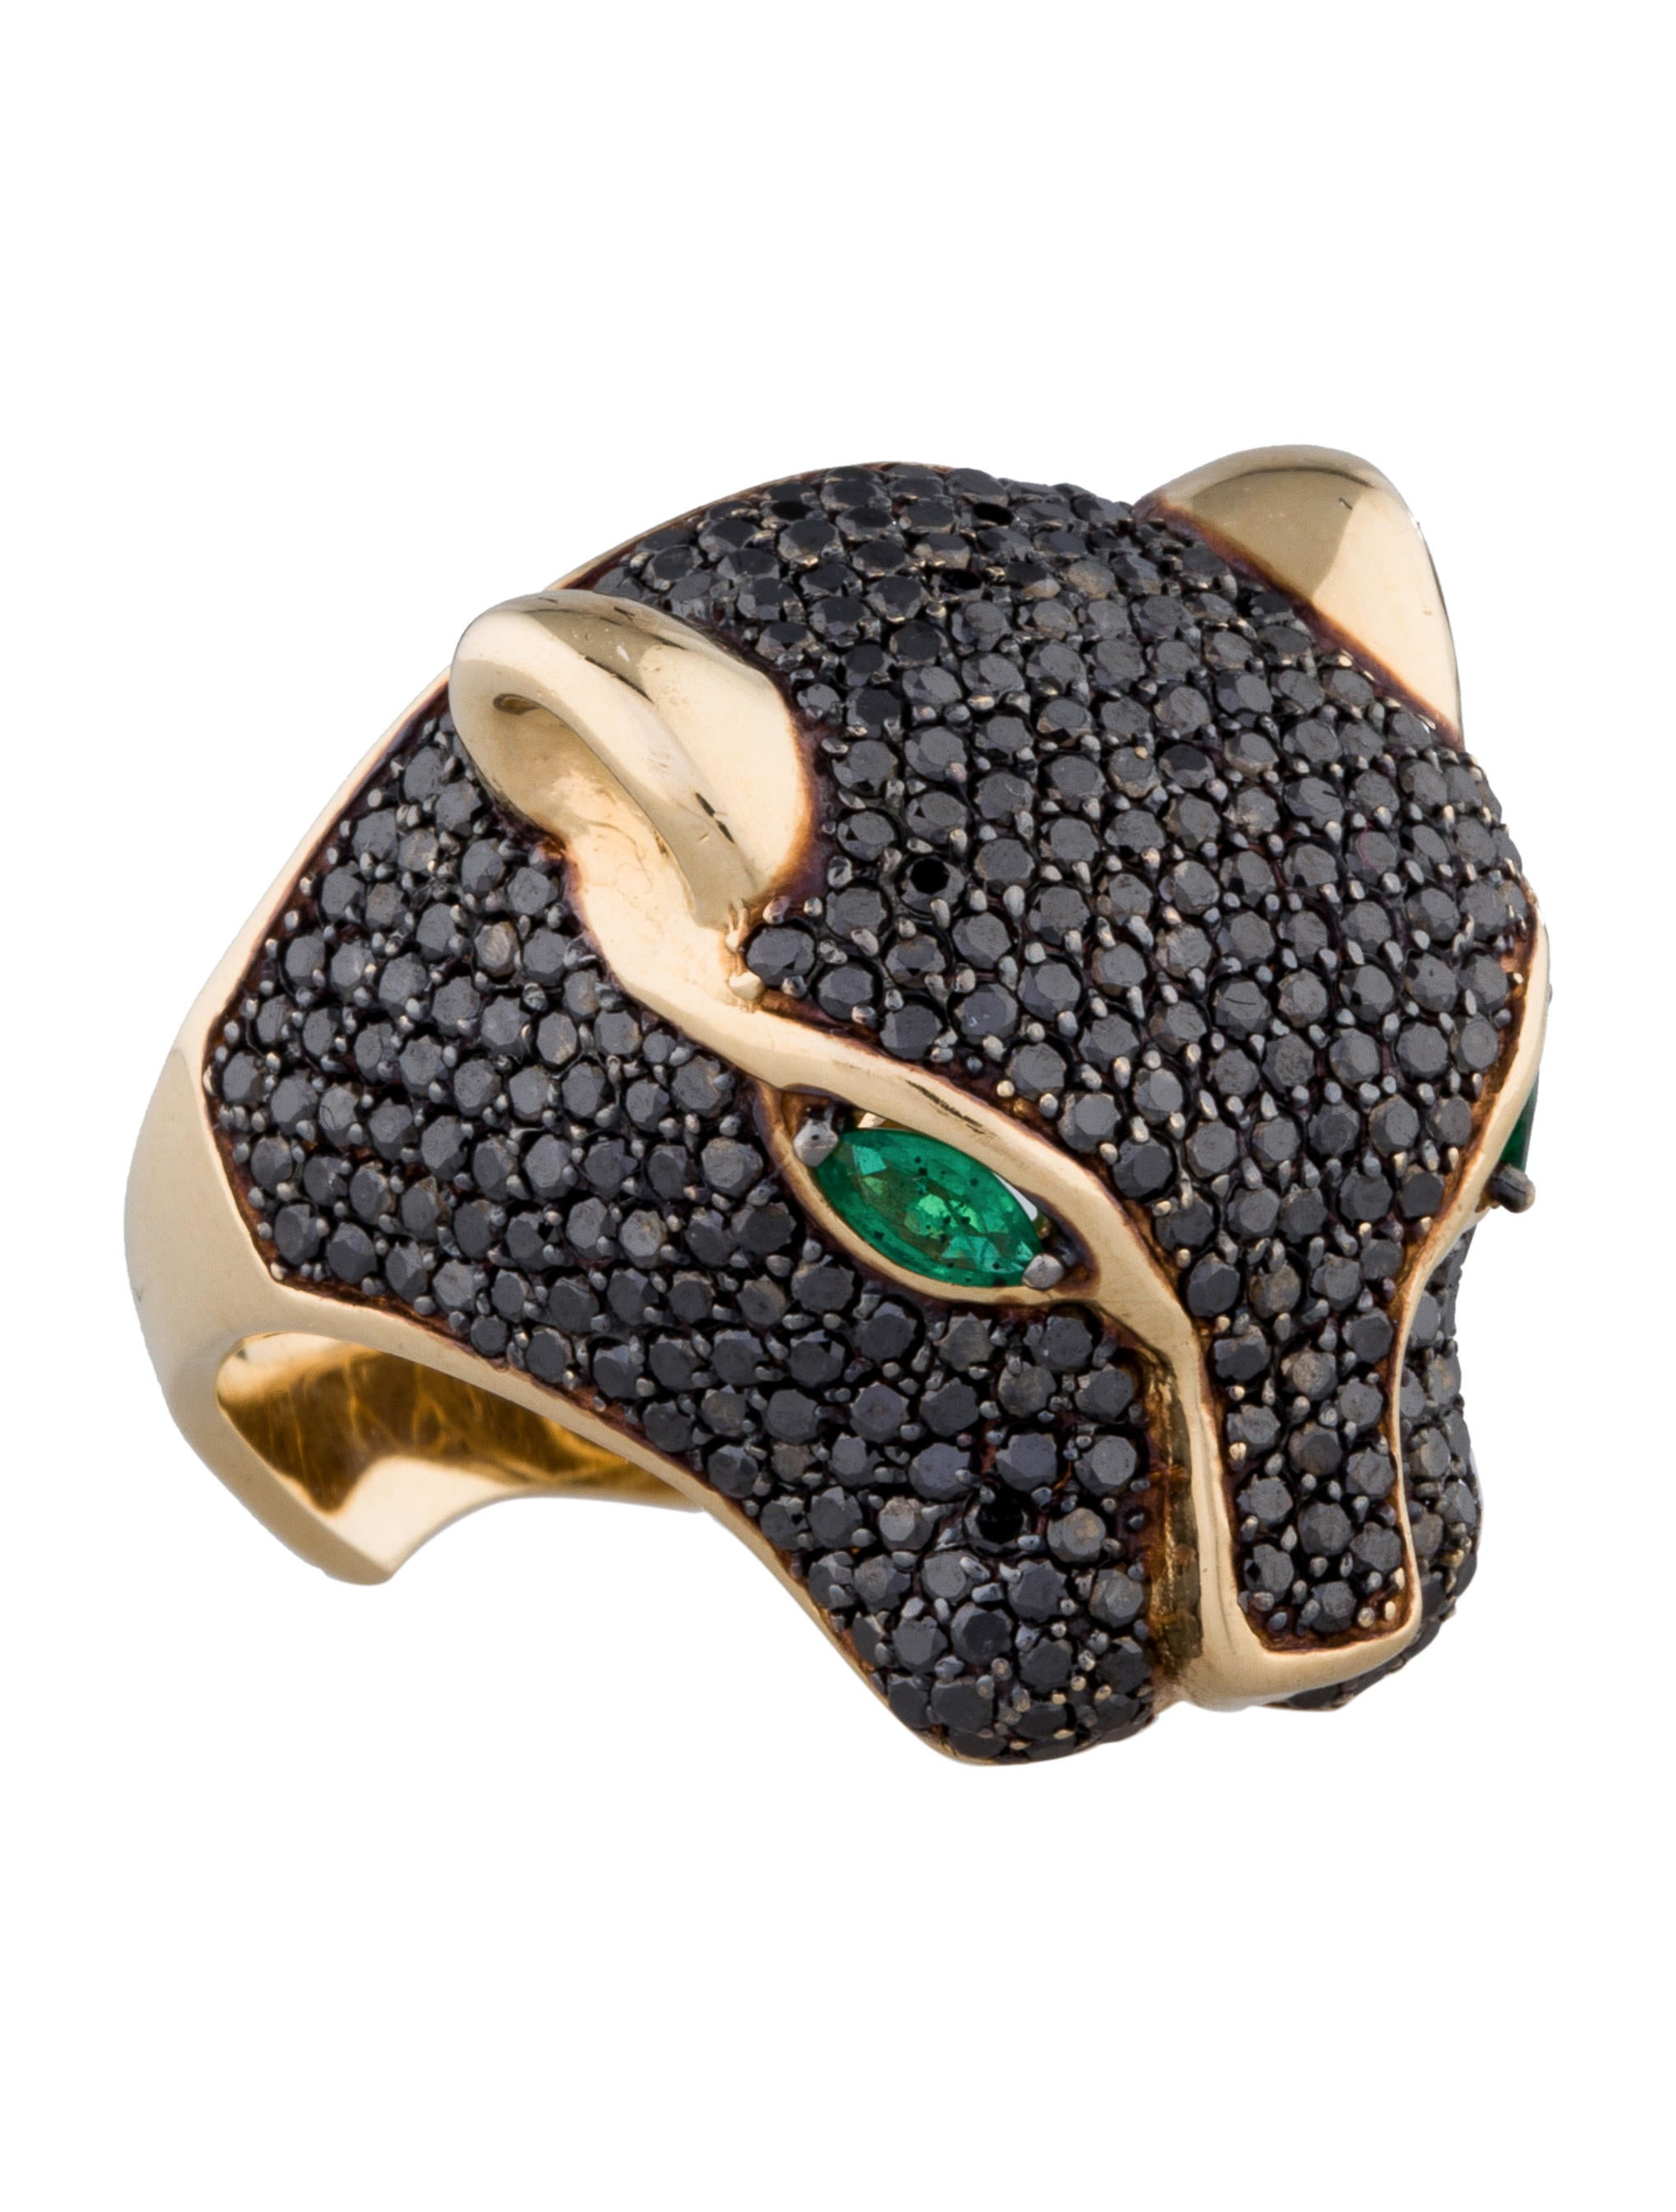 Effy Jewelry Panther Ring - Rings